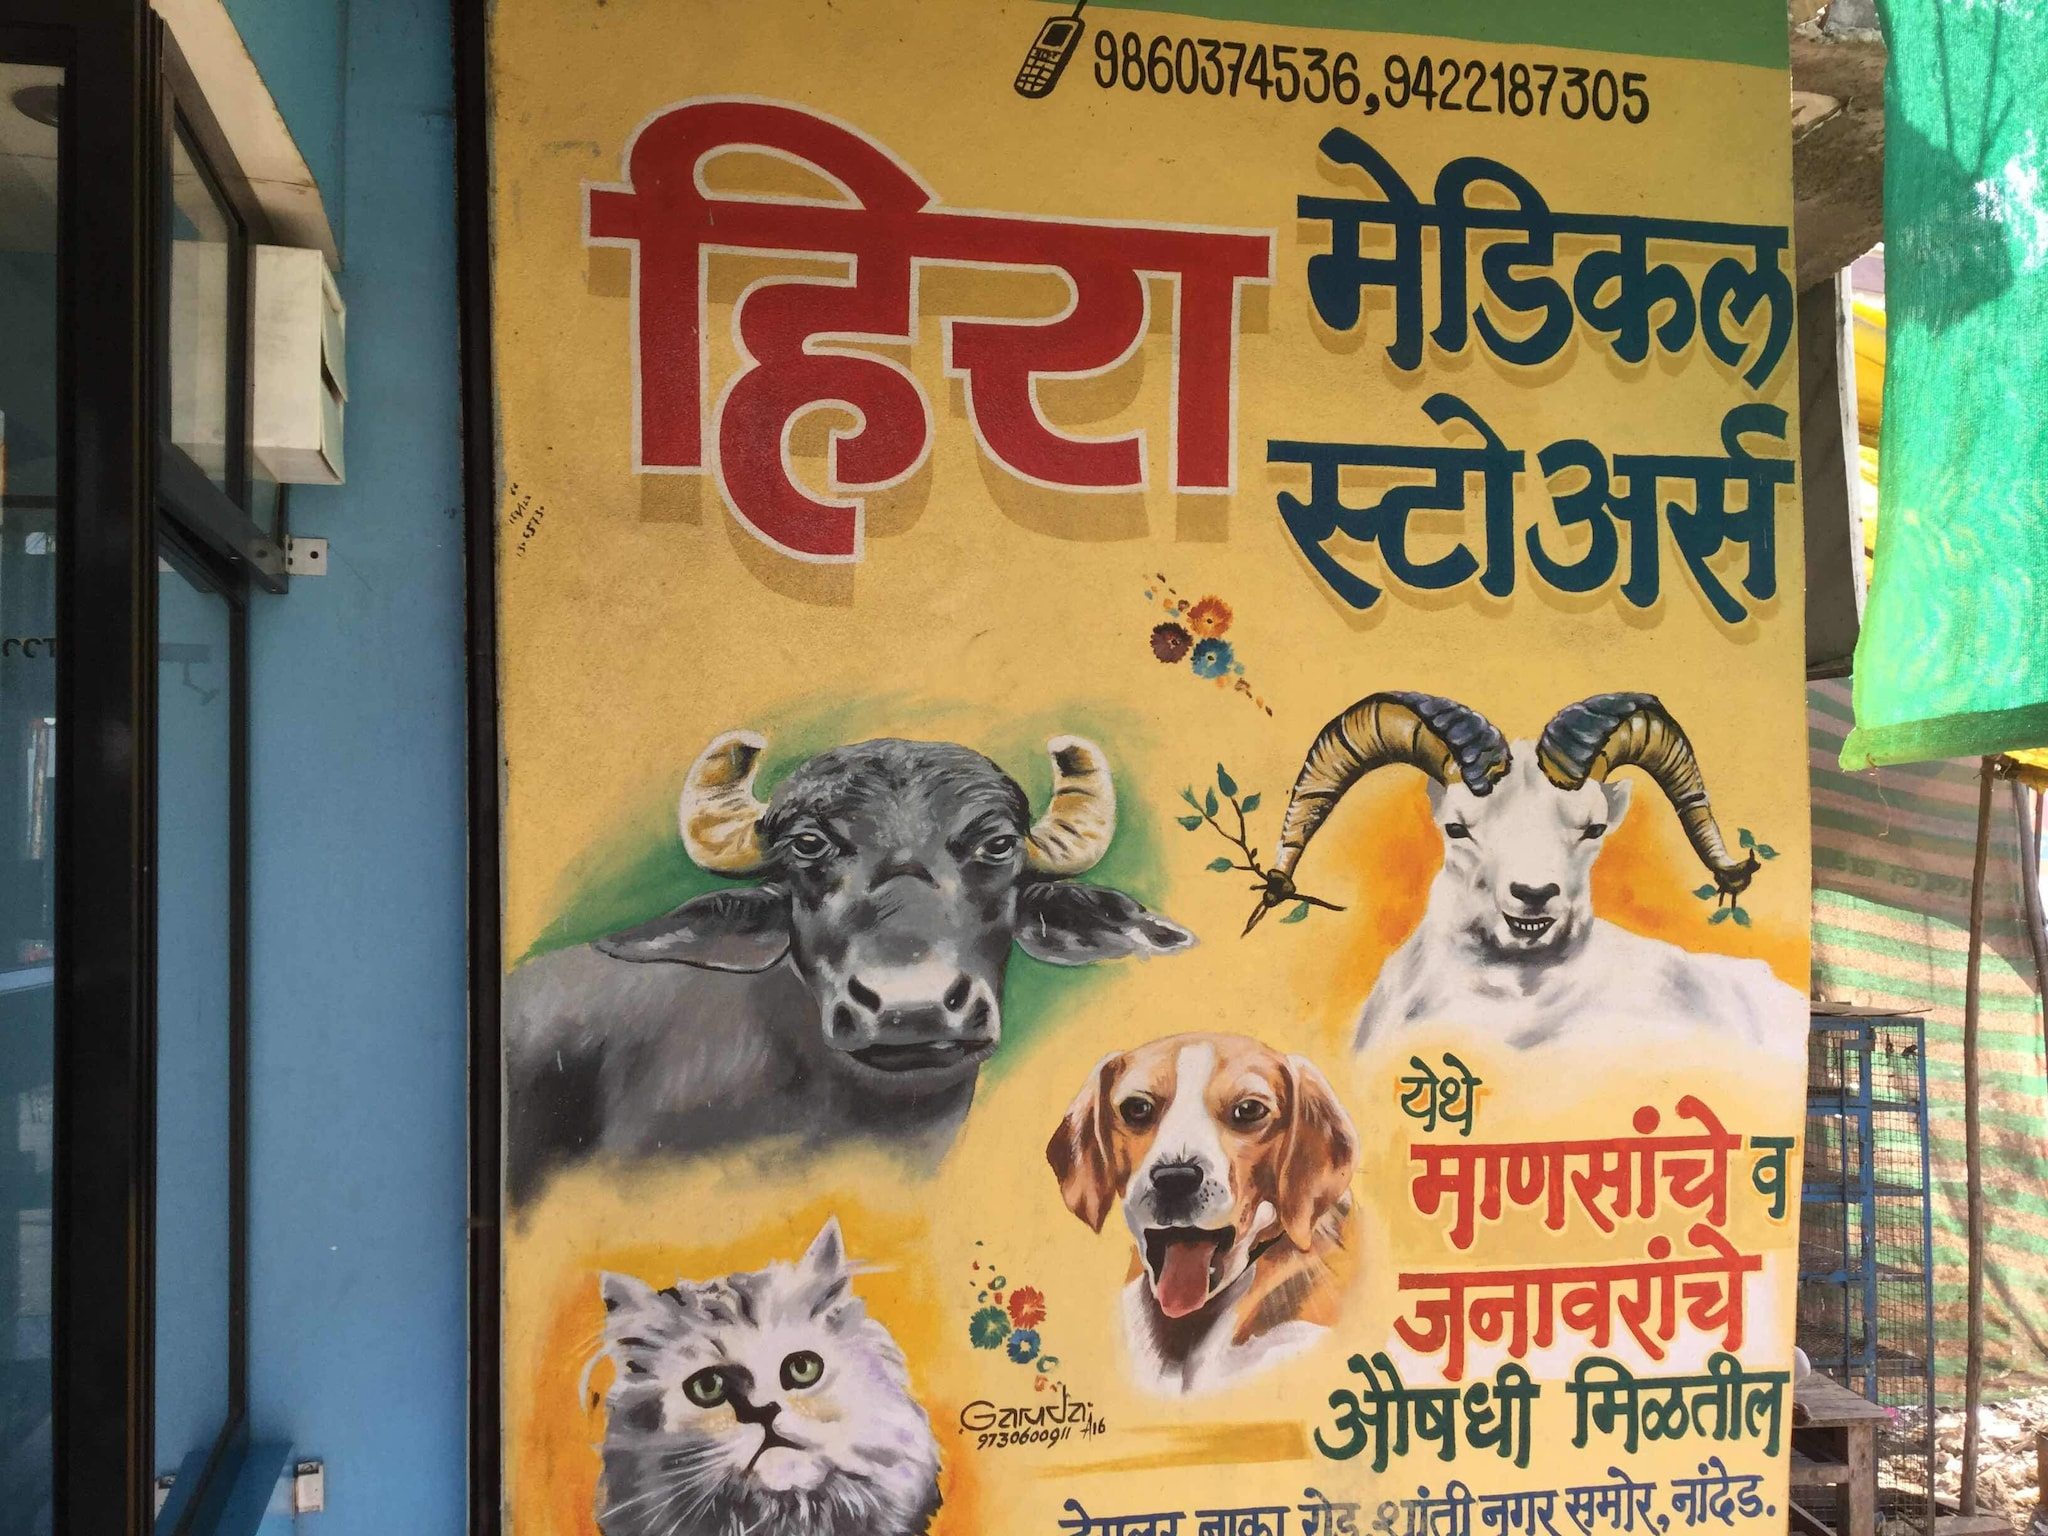 Top Veterinary Feed Suppliers in Nanded - Justdial